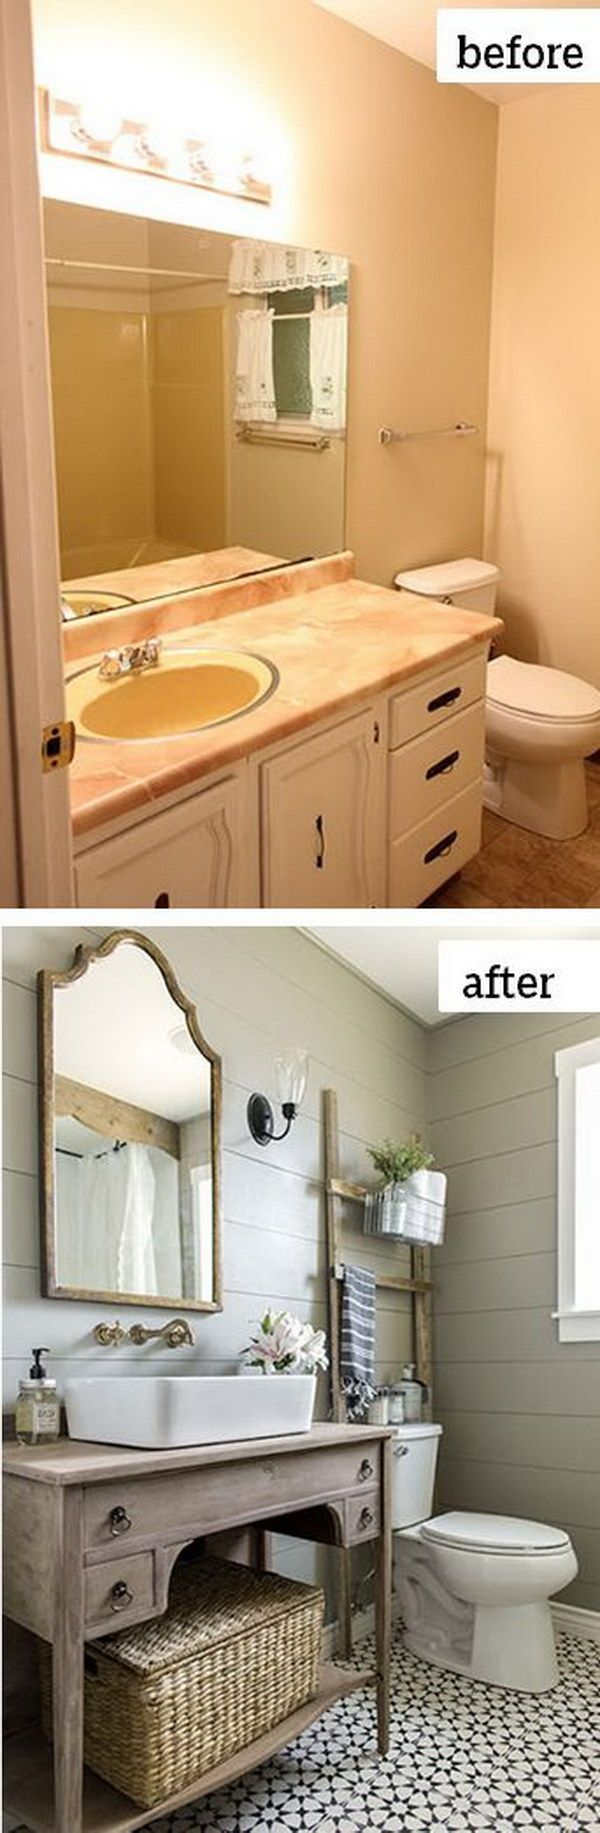 Bathroom Makeovers And Remodeling Ideas best 25+ bathroom before after ideas on pinterest | modern